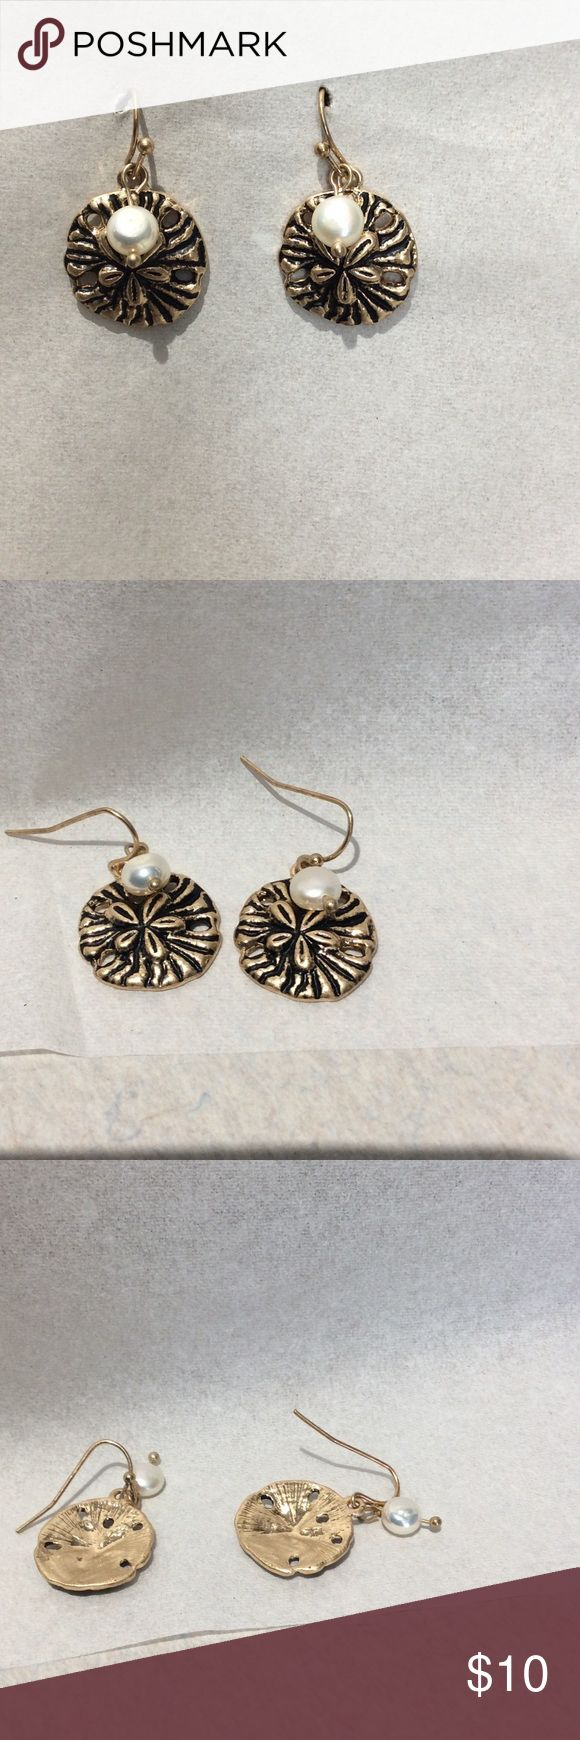 Gold Sand Dollar Earrings Gold Sand Dollar Earrings With Pearl brand new Jewelry Earrings